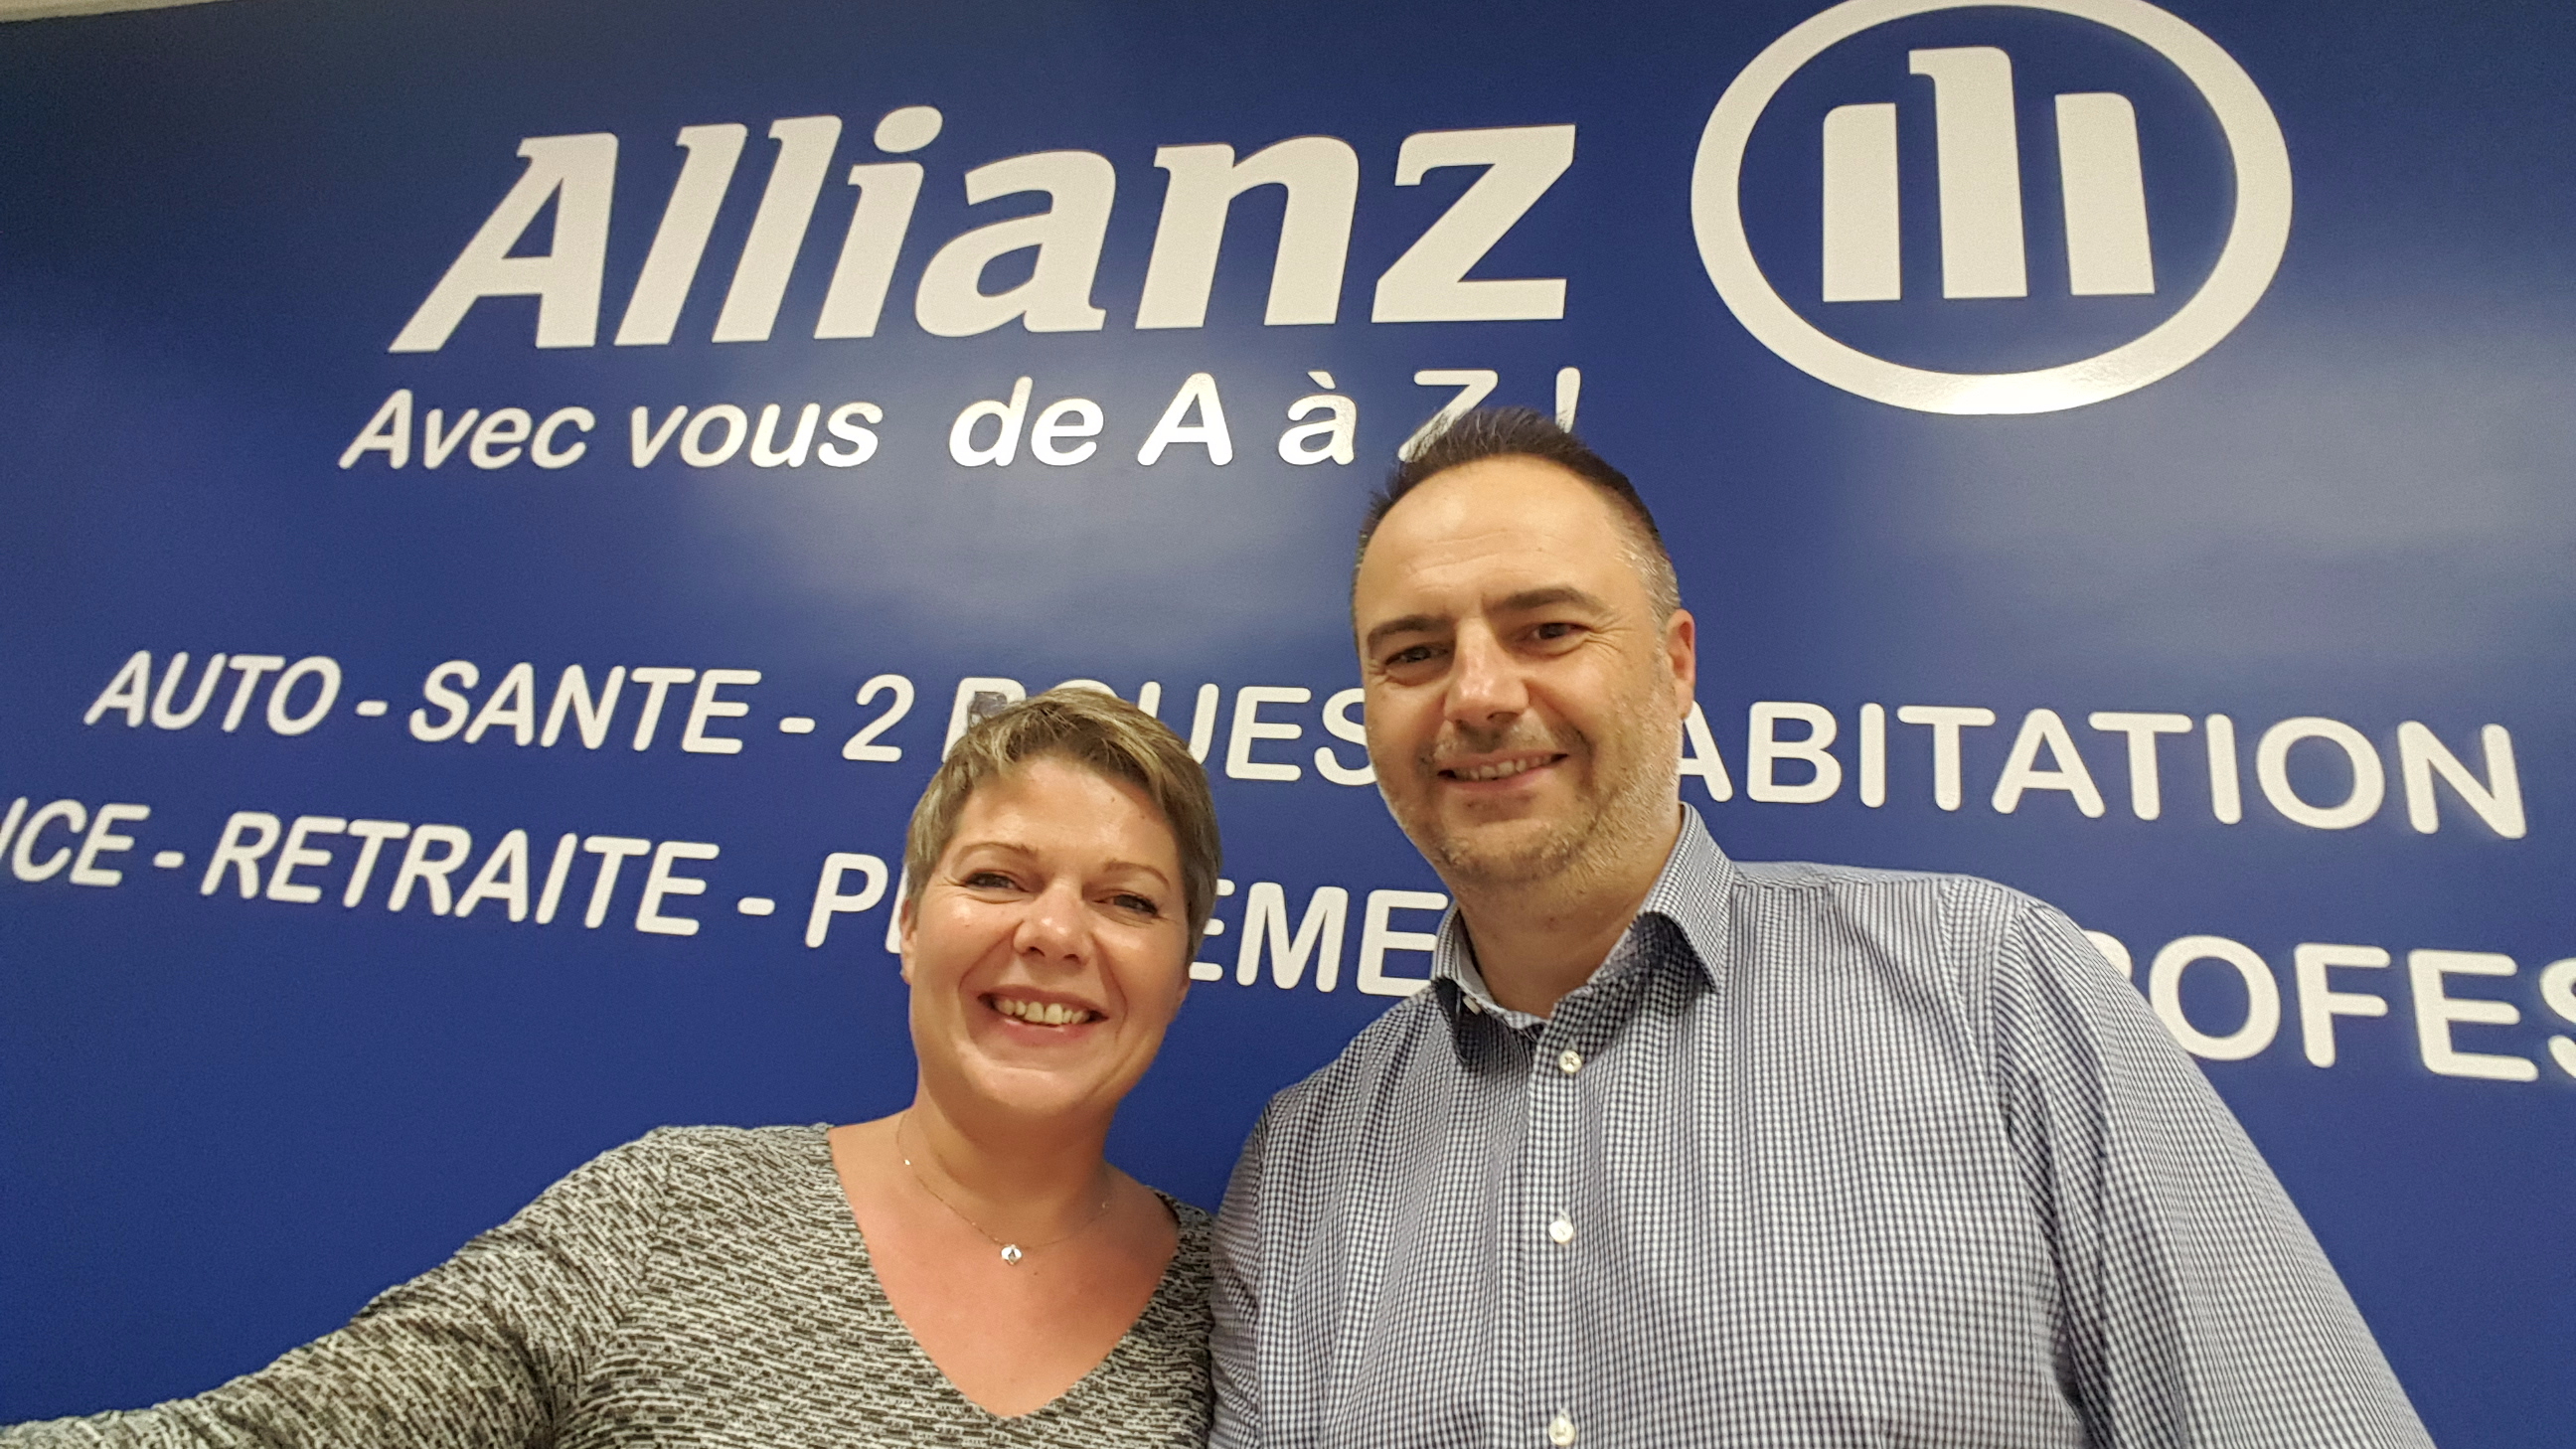 Allianz Cousolre - VANDEVELDE & BLONDEL